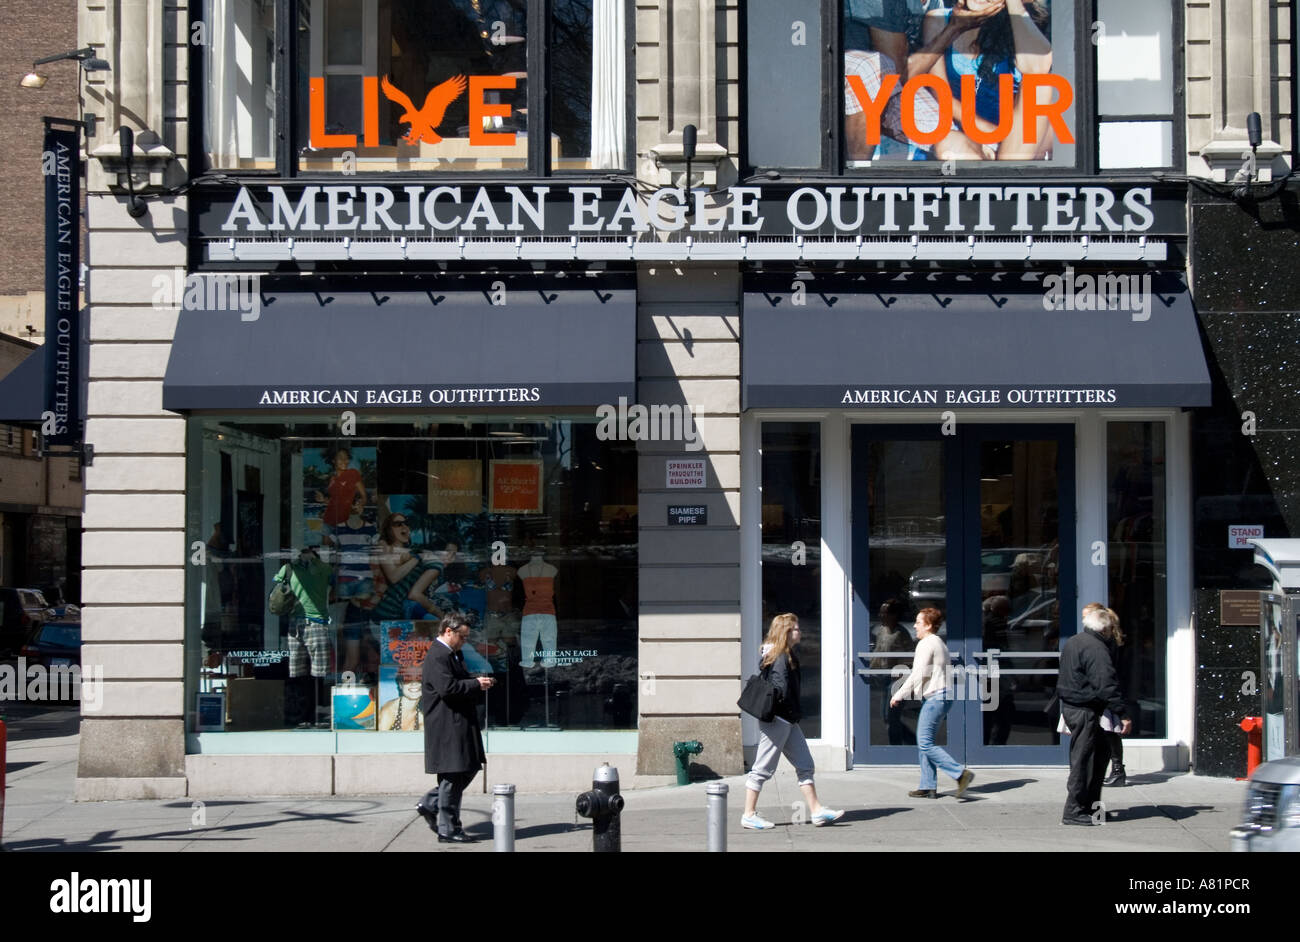 American Eagle Outfitters Shop Union Square New York City